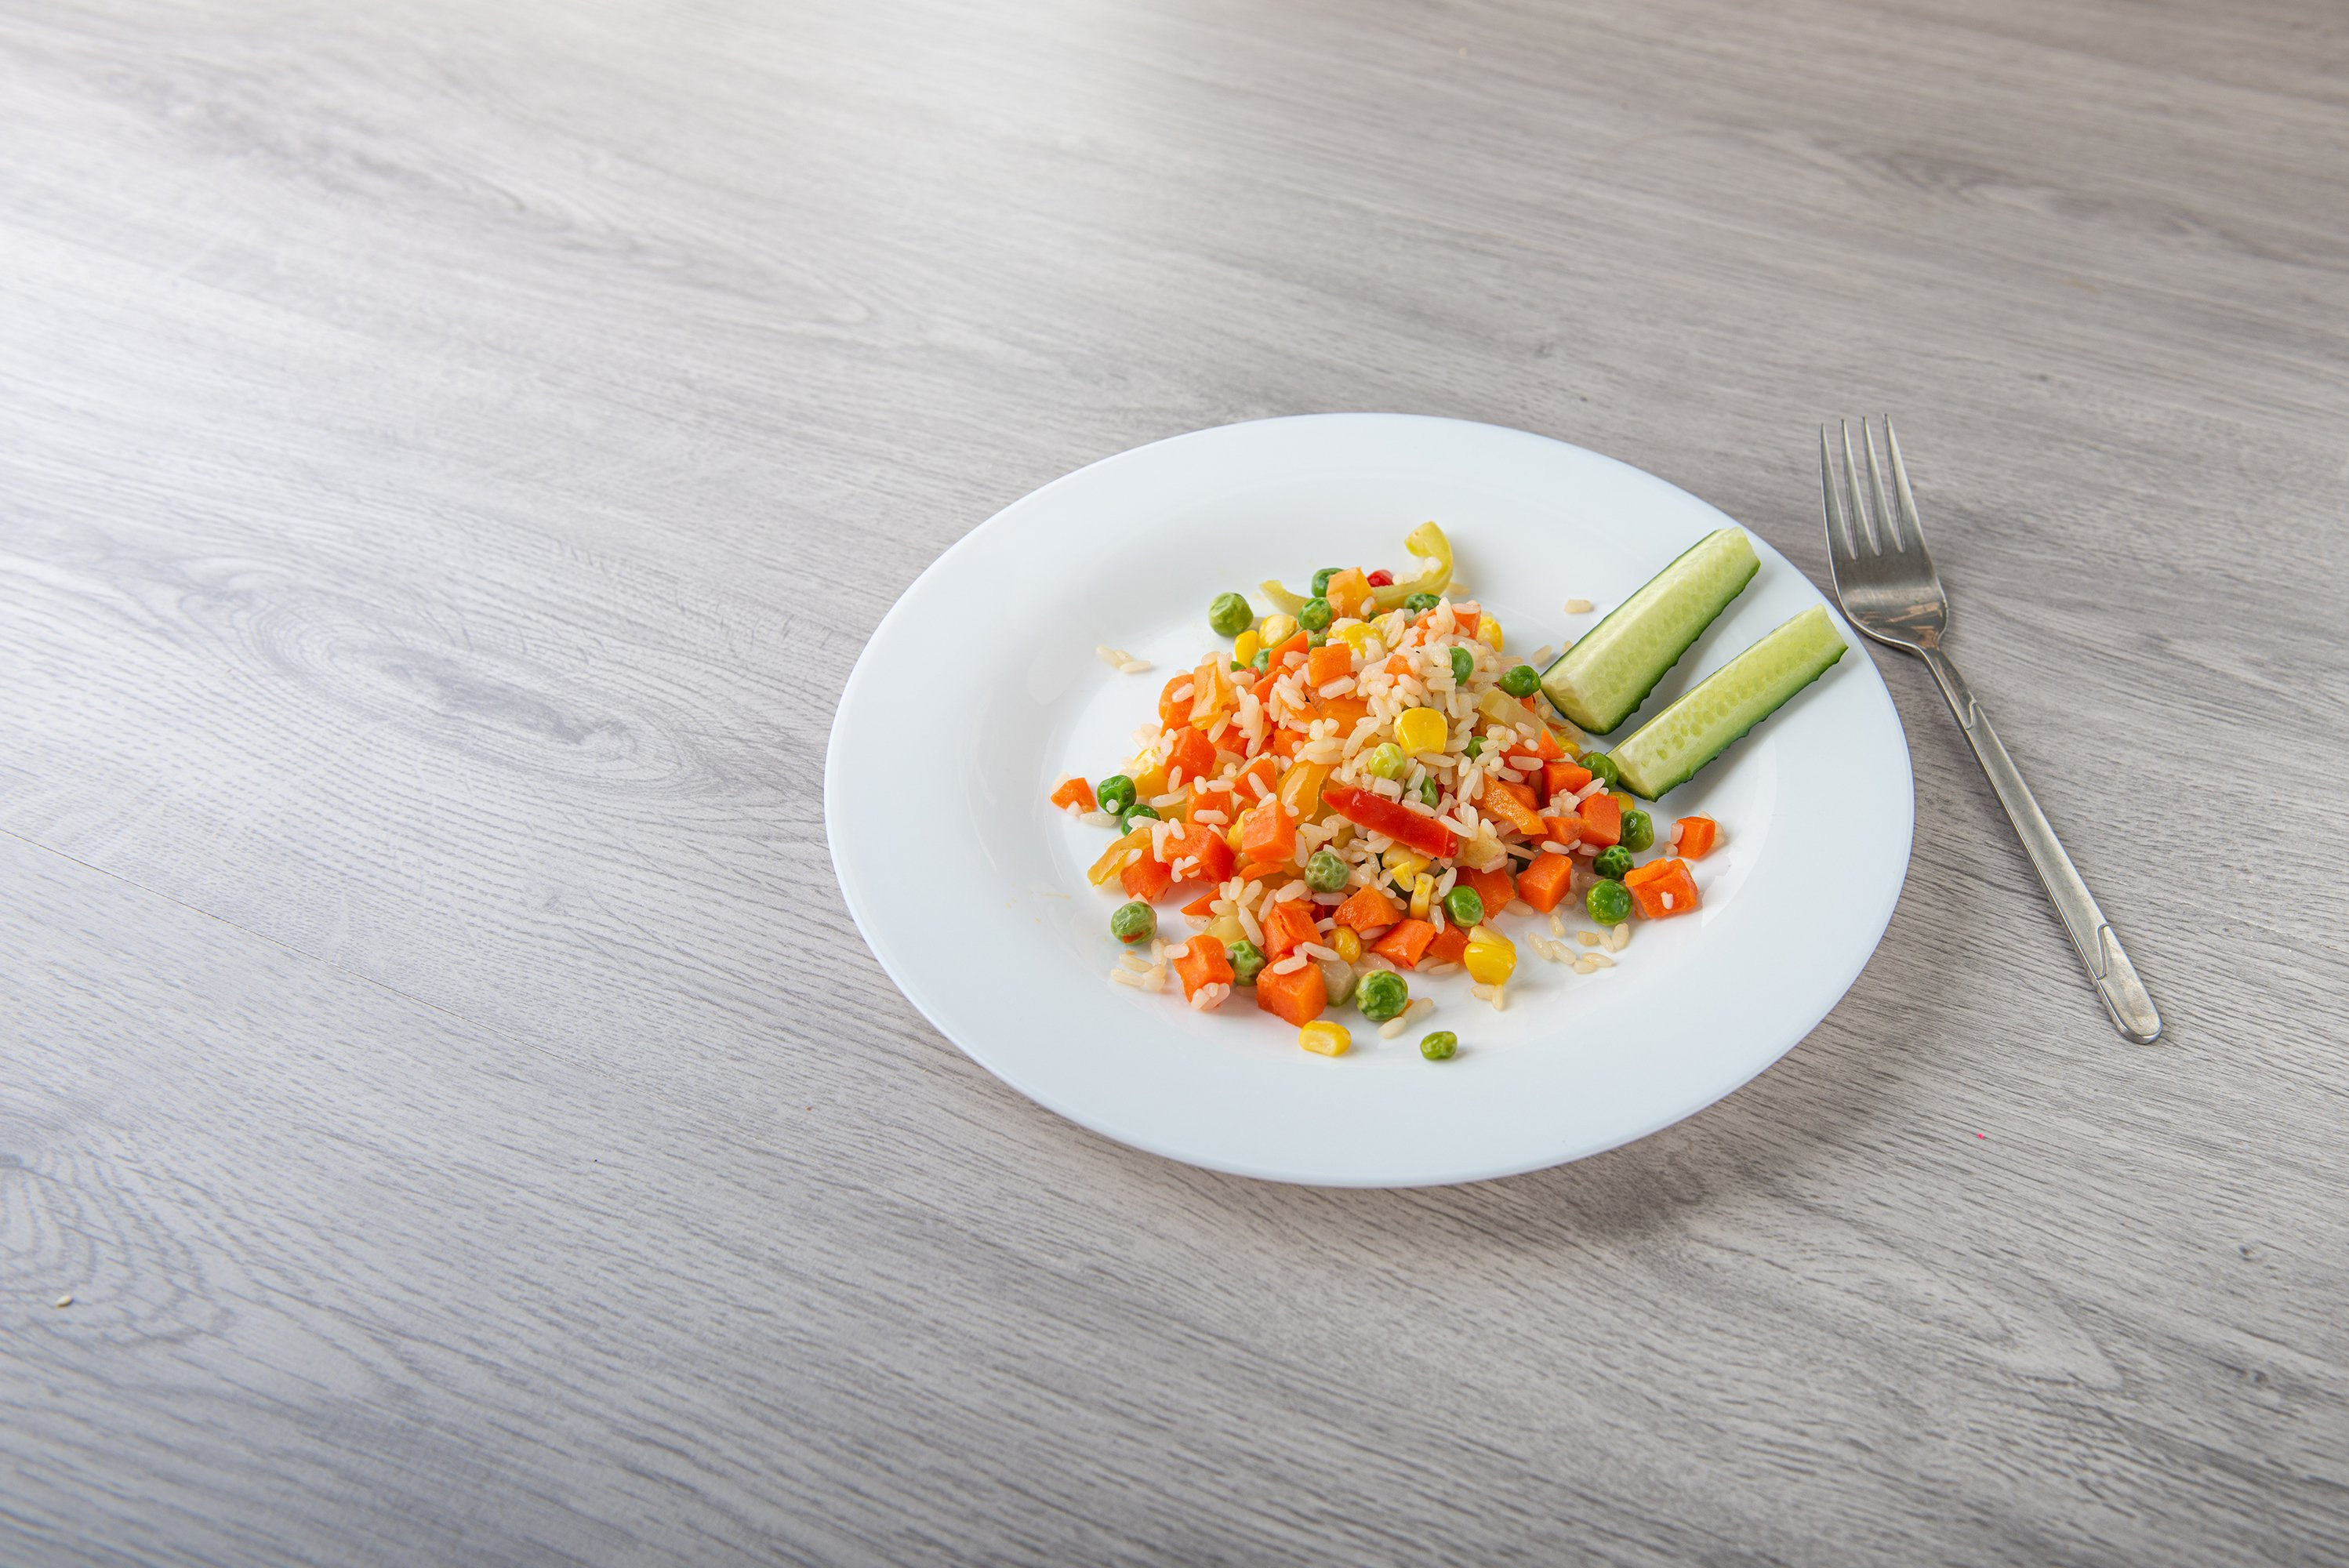 Hawaiian vegetable mix on light wooden table with copy space example image 1